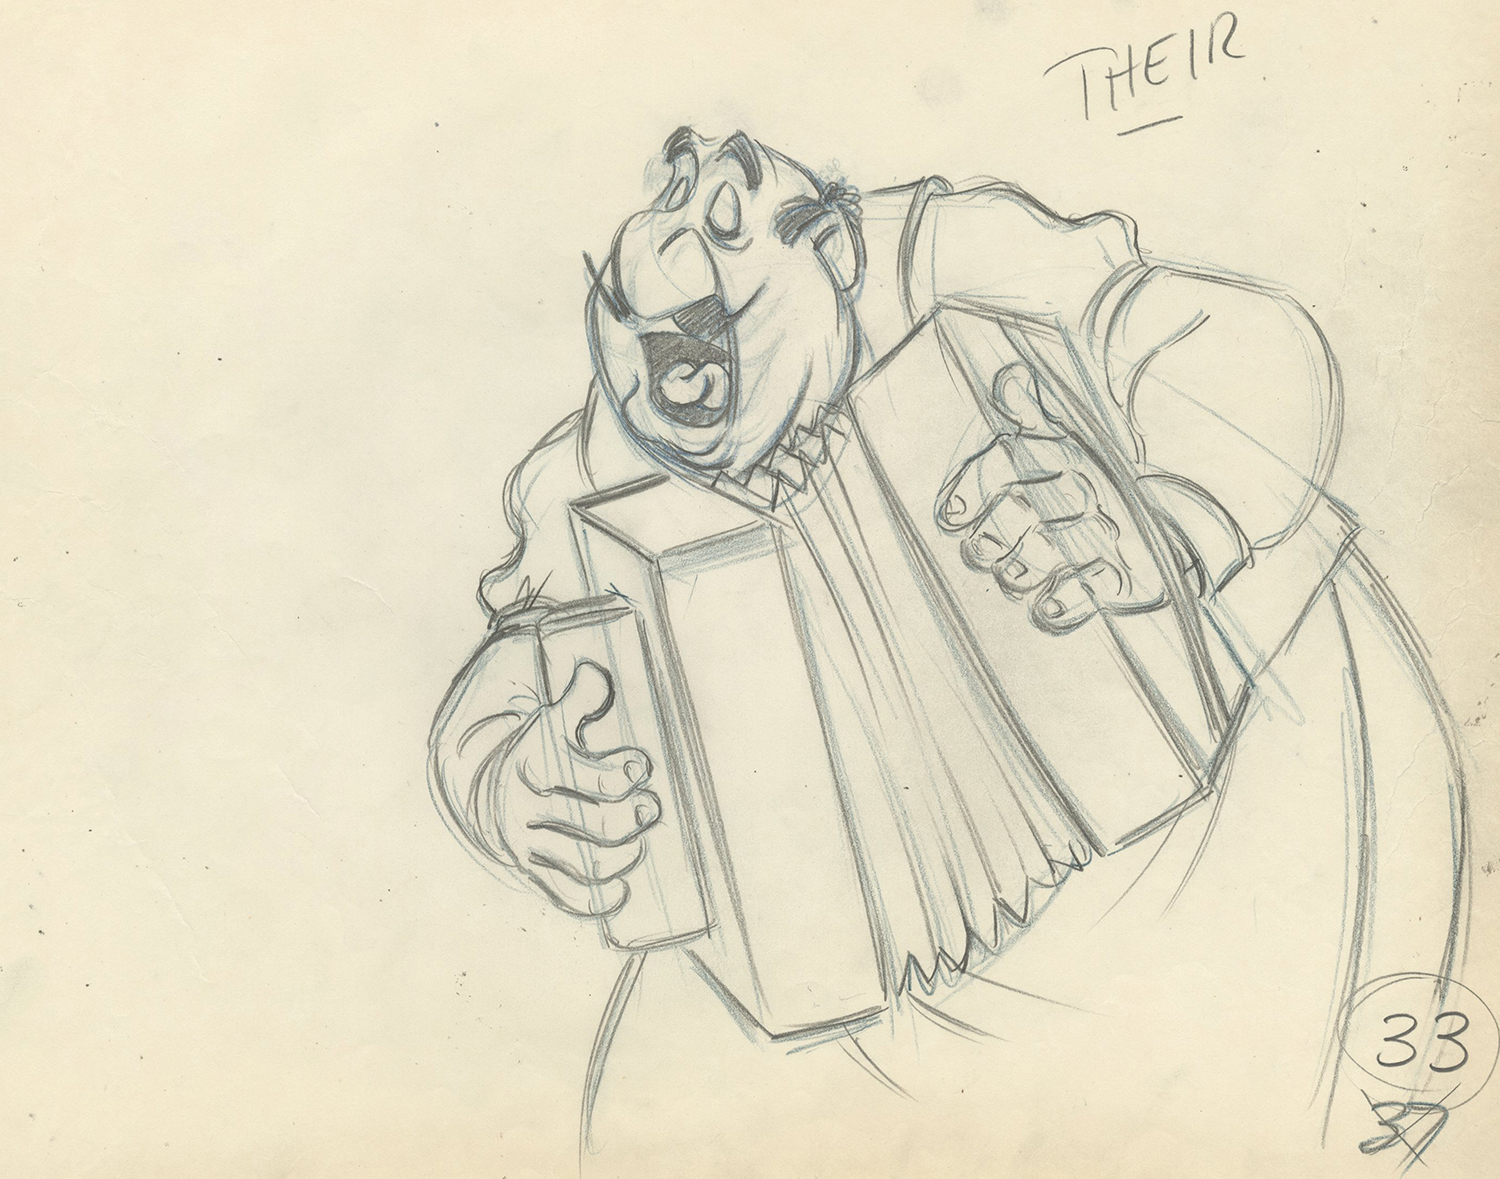 Lady And The Tramp Production Drawing Id Julyladytramp0552 Van Eaton Galleries